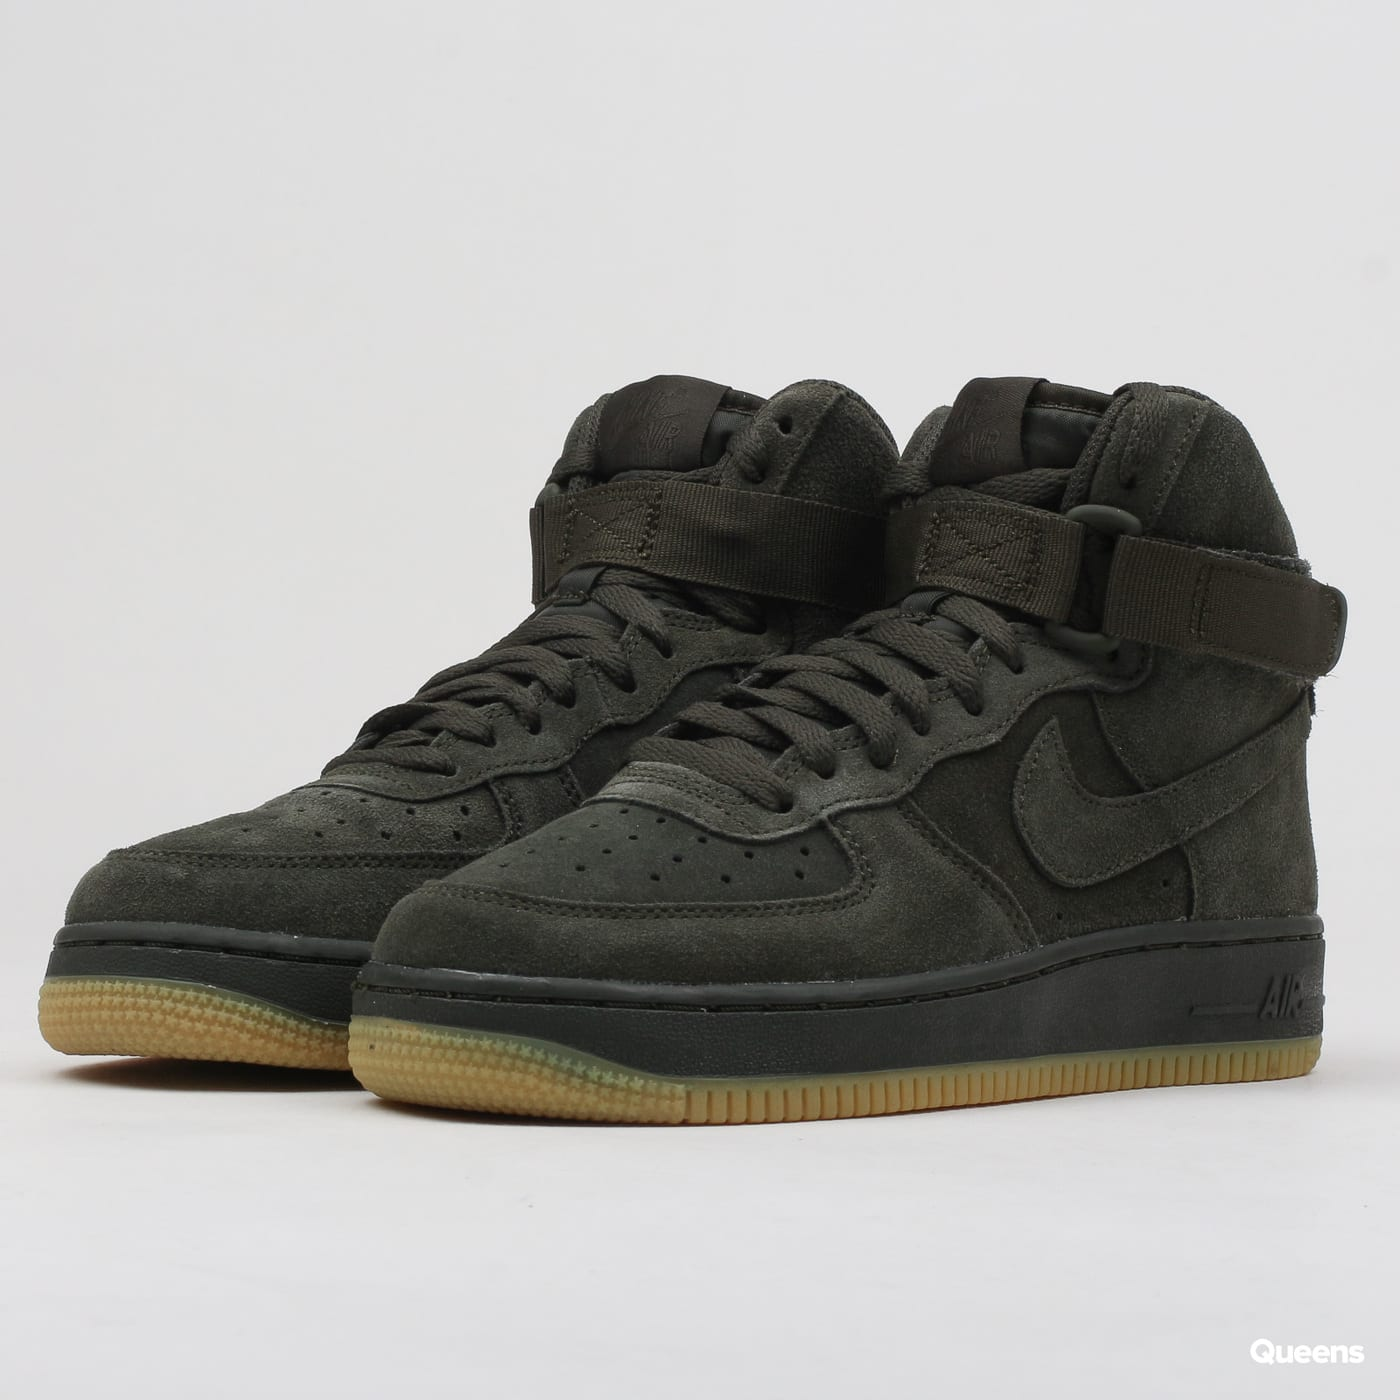 on sale c4410 e163b Nike Air Force 1 High LV8 (GS) sequoia   sequoia (807617-300) – Queens 💚